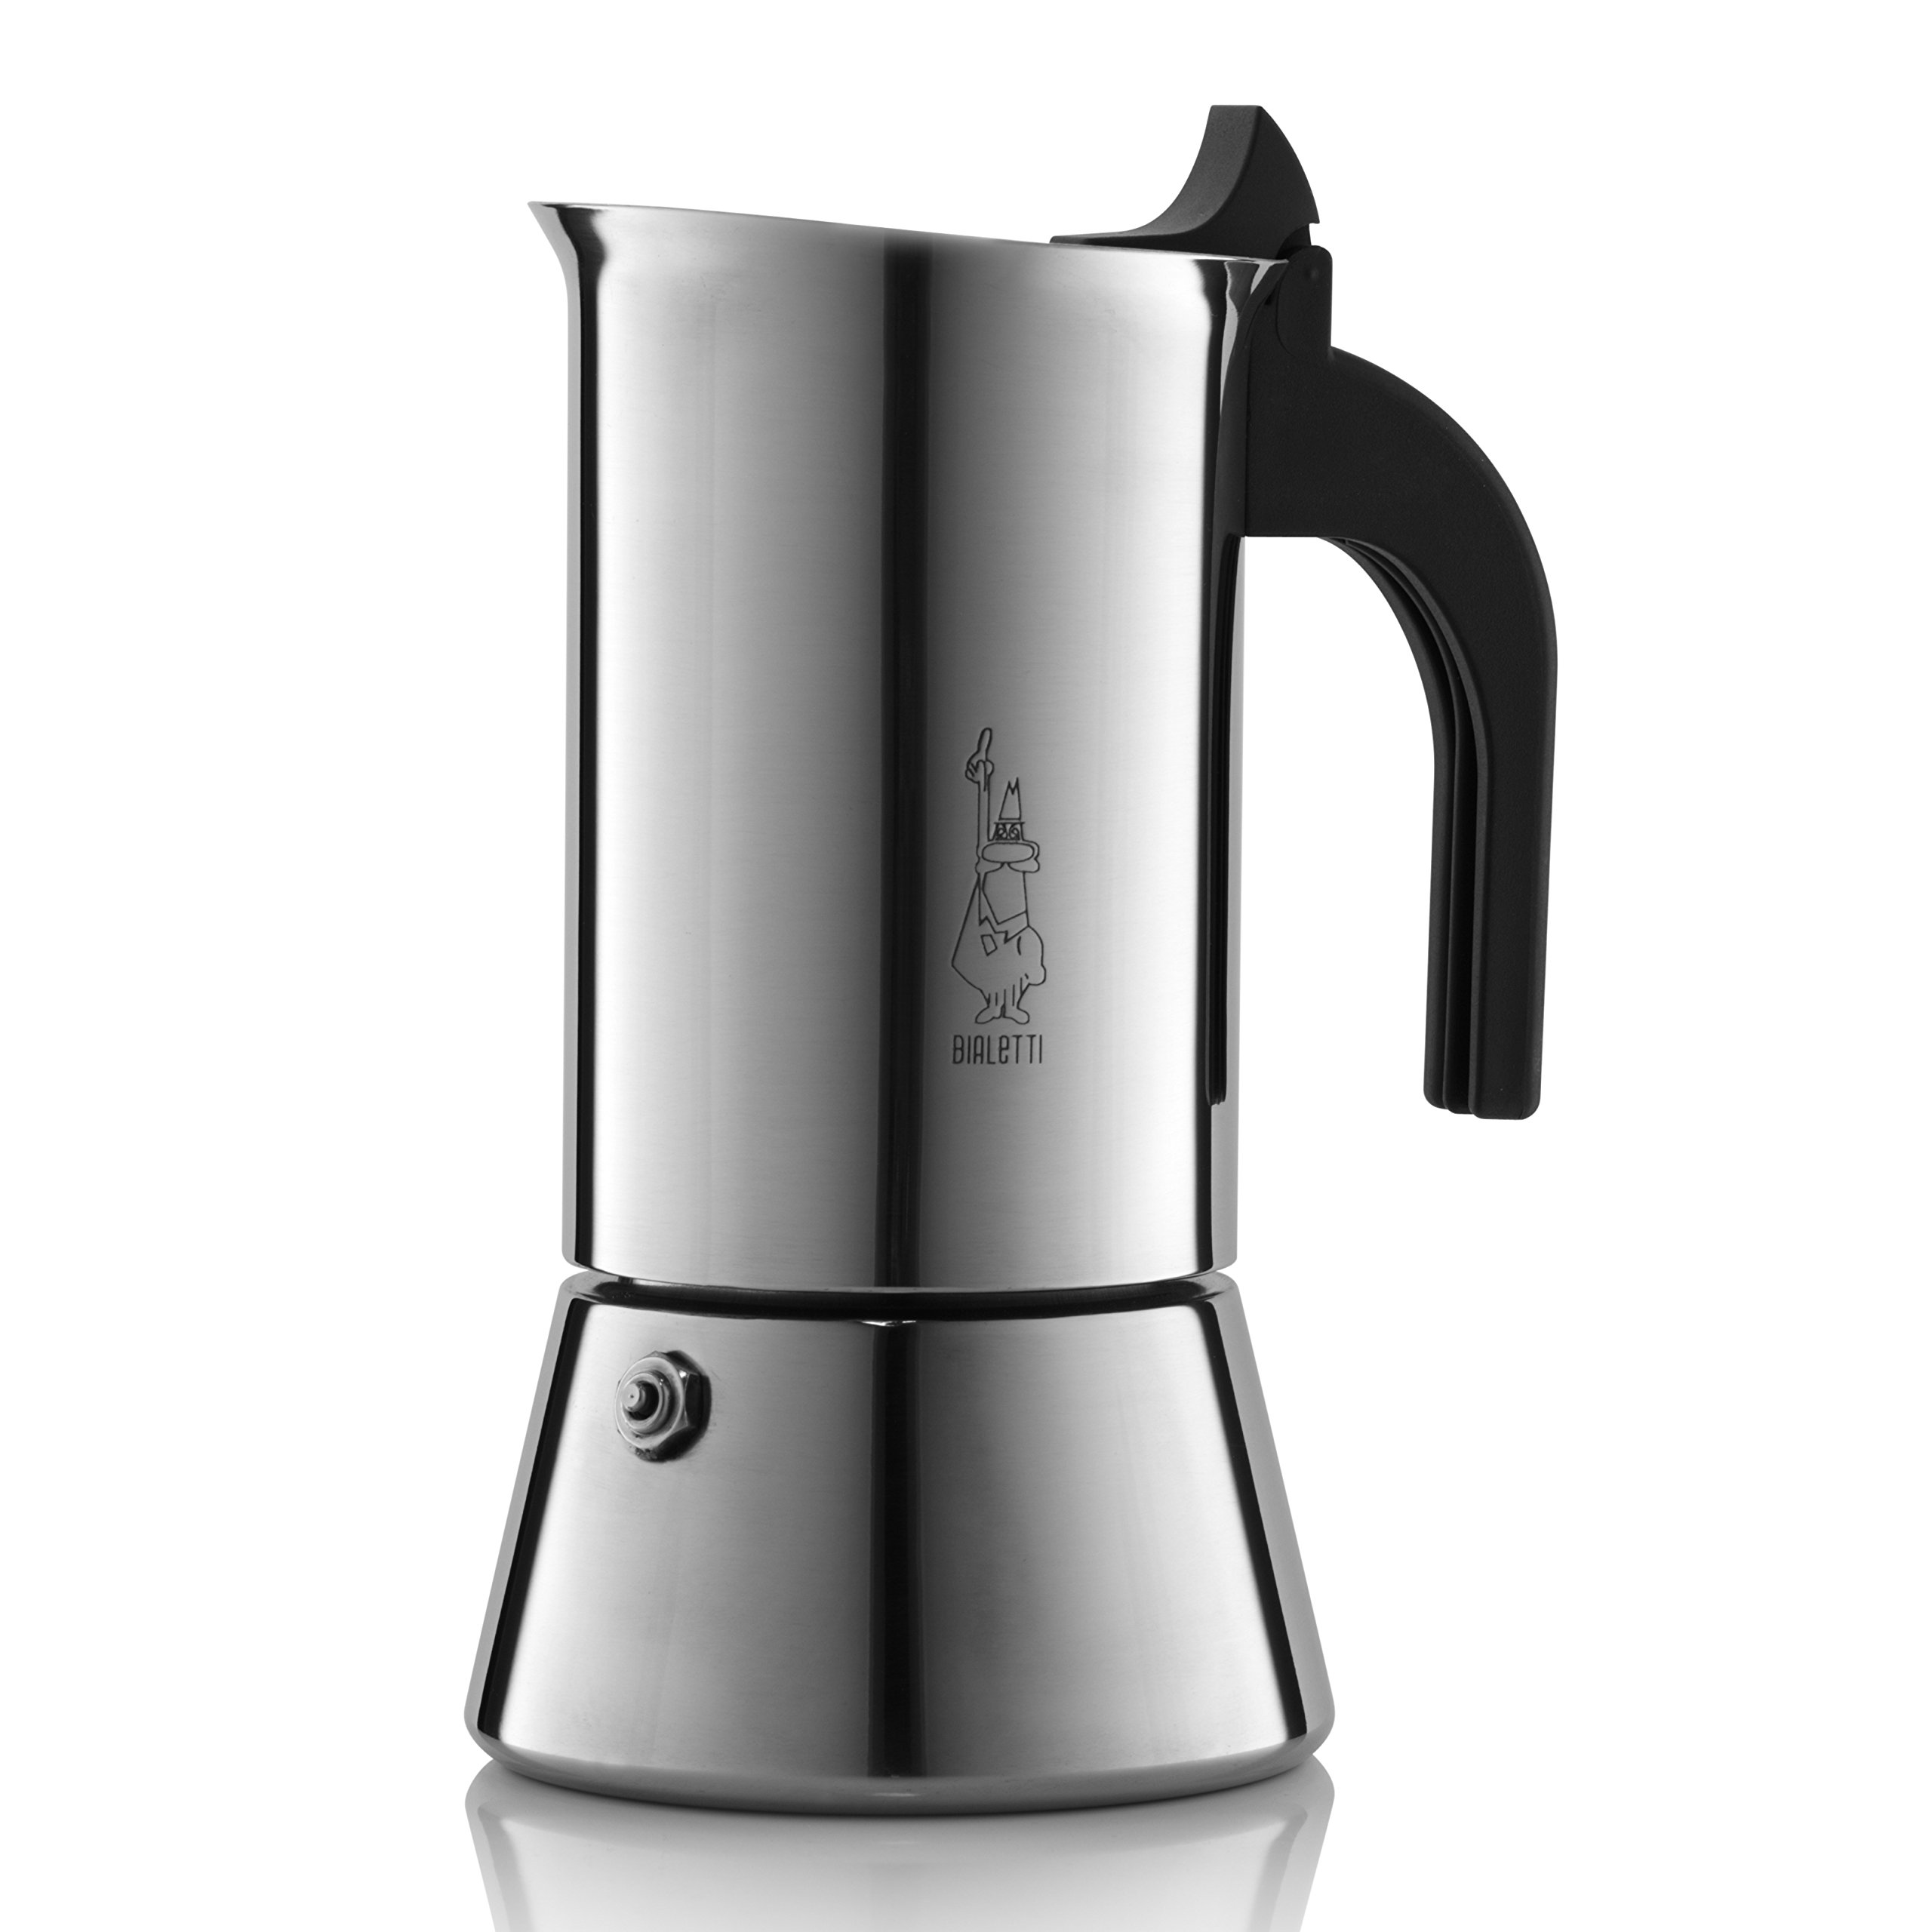 Venus Induction Capable Espresso Coffee Maker, Stainless Steel, 6 cup